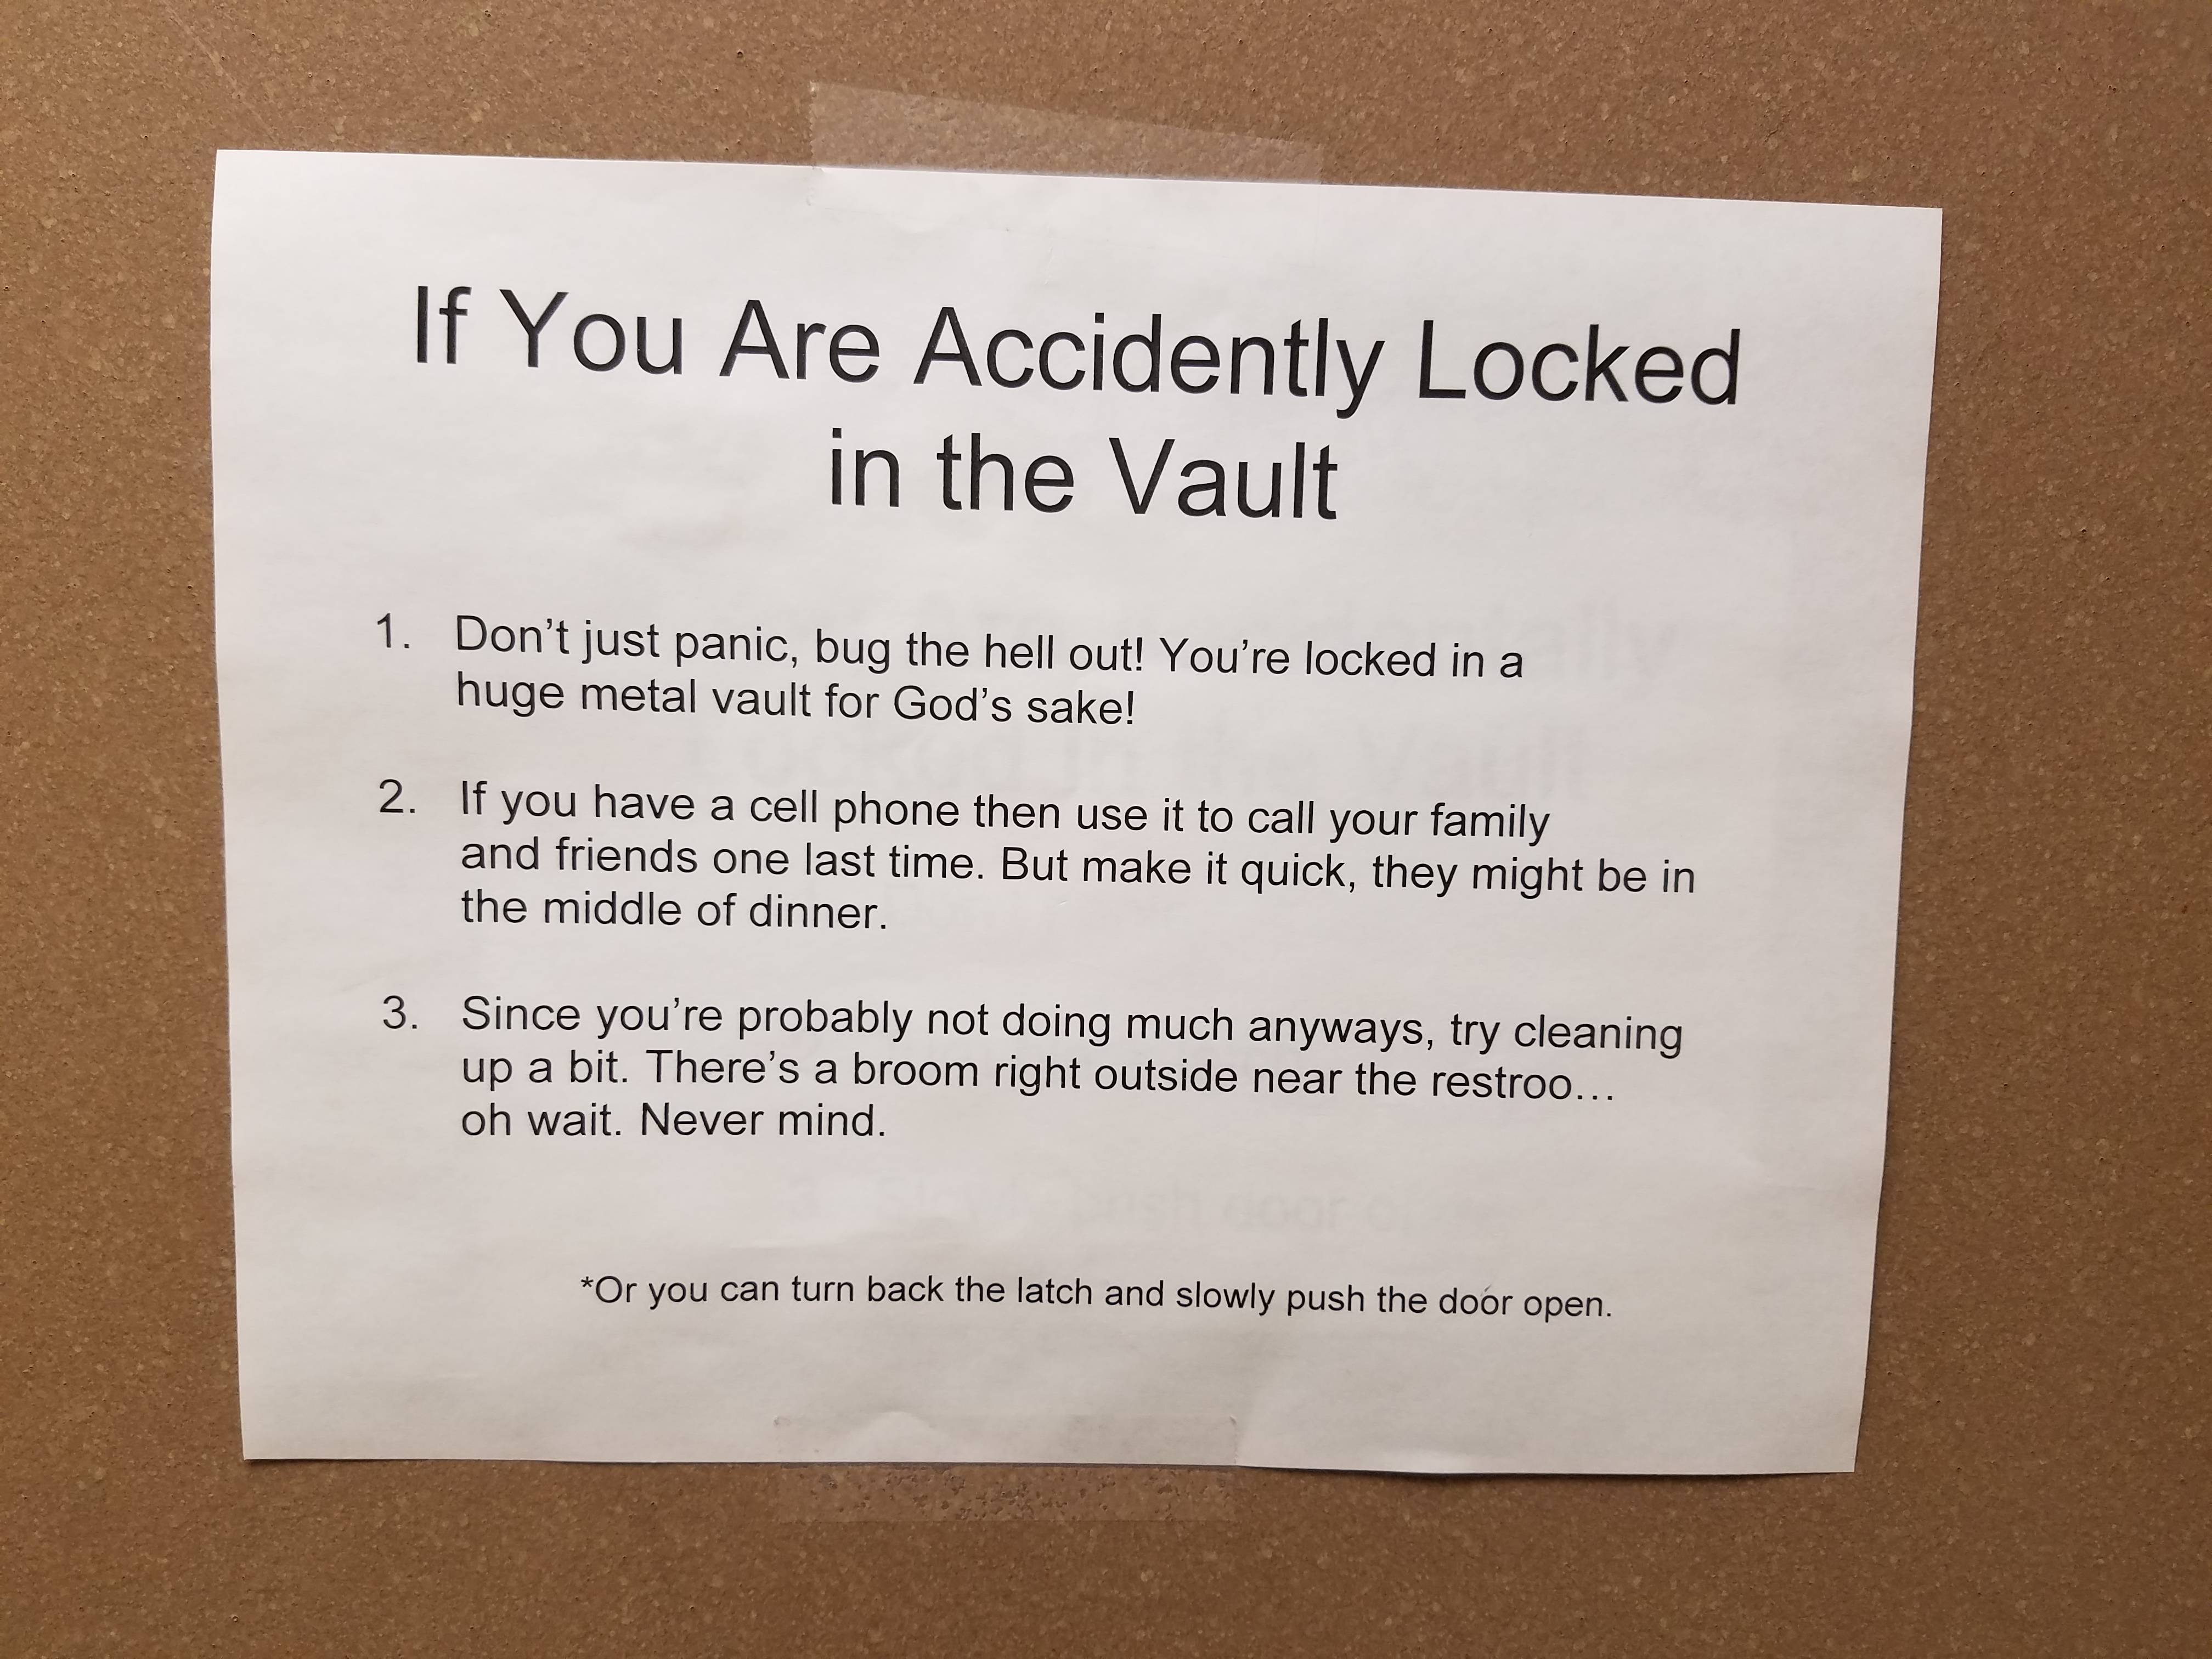 If you are accidentally locked in the vault.